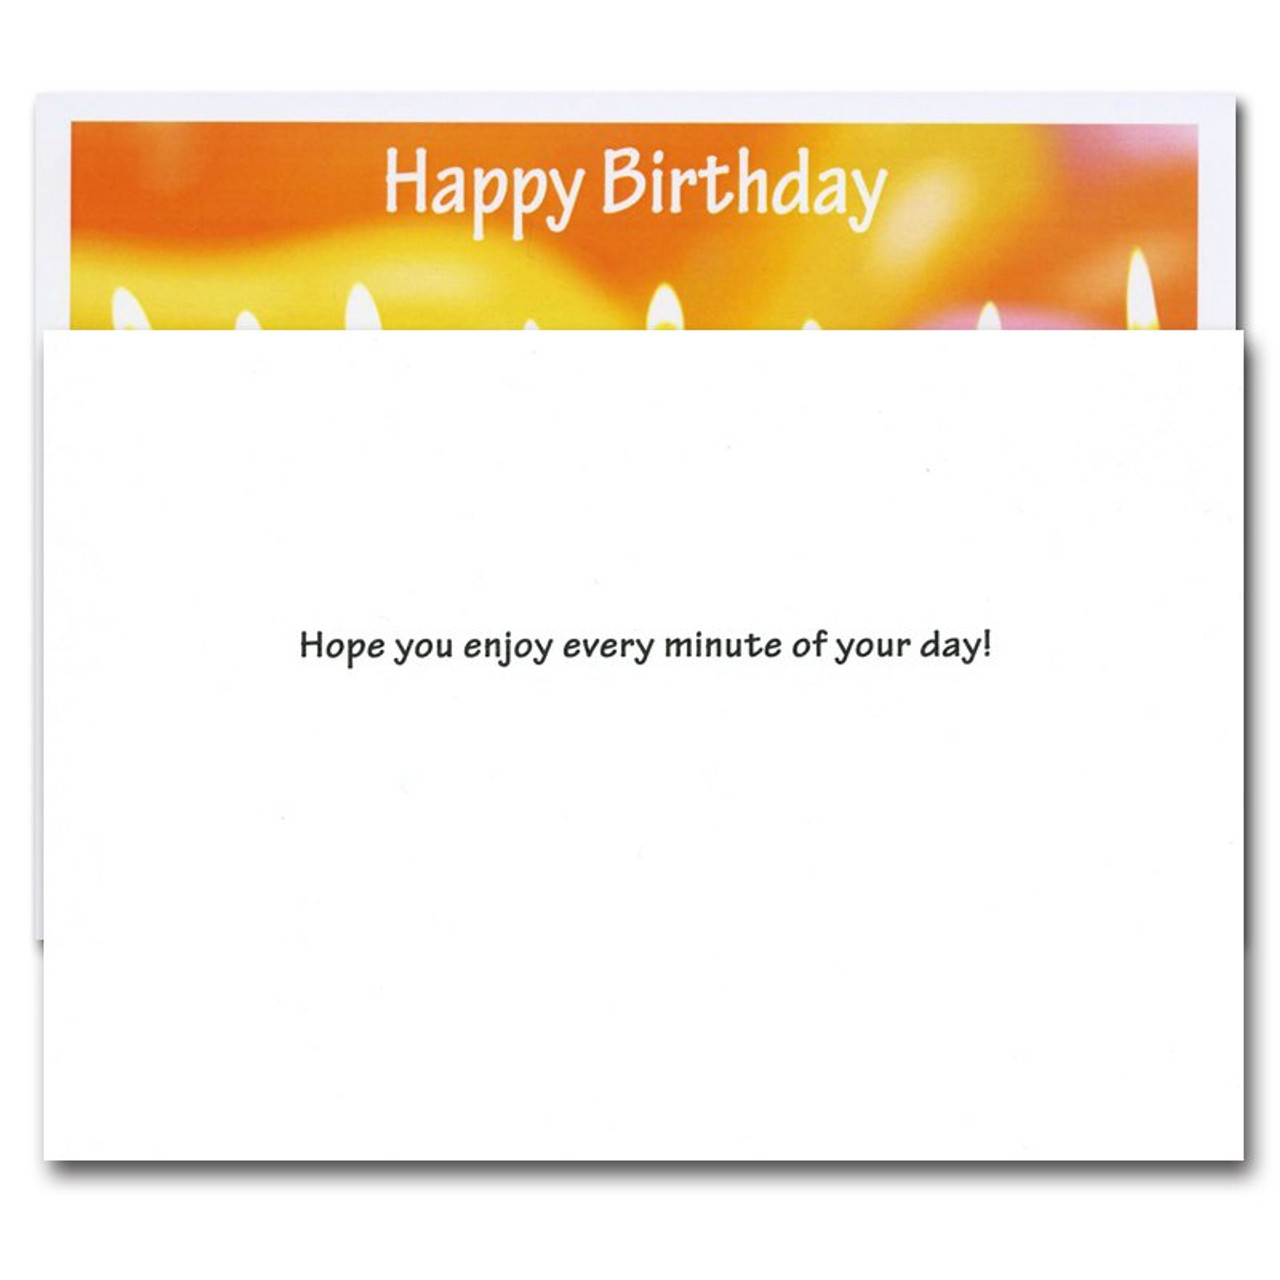 Inside of Line Up Birthday Card reads: Hope you enjoy every minute of your day!